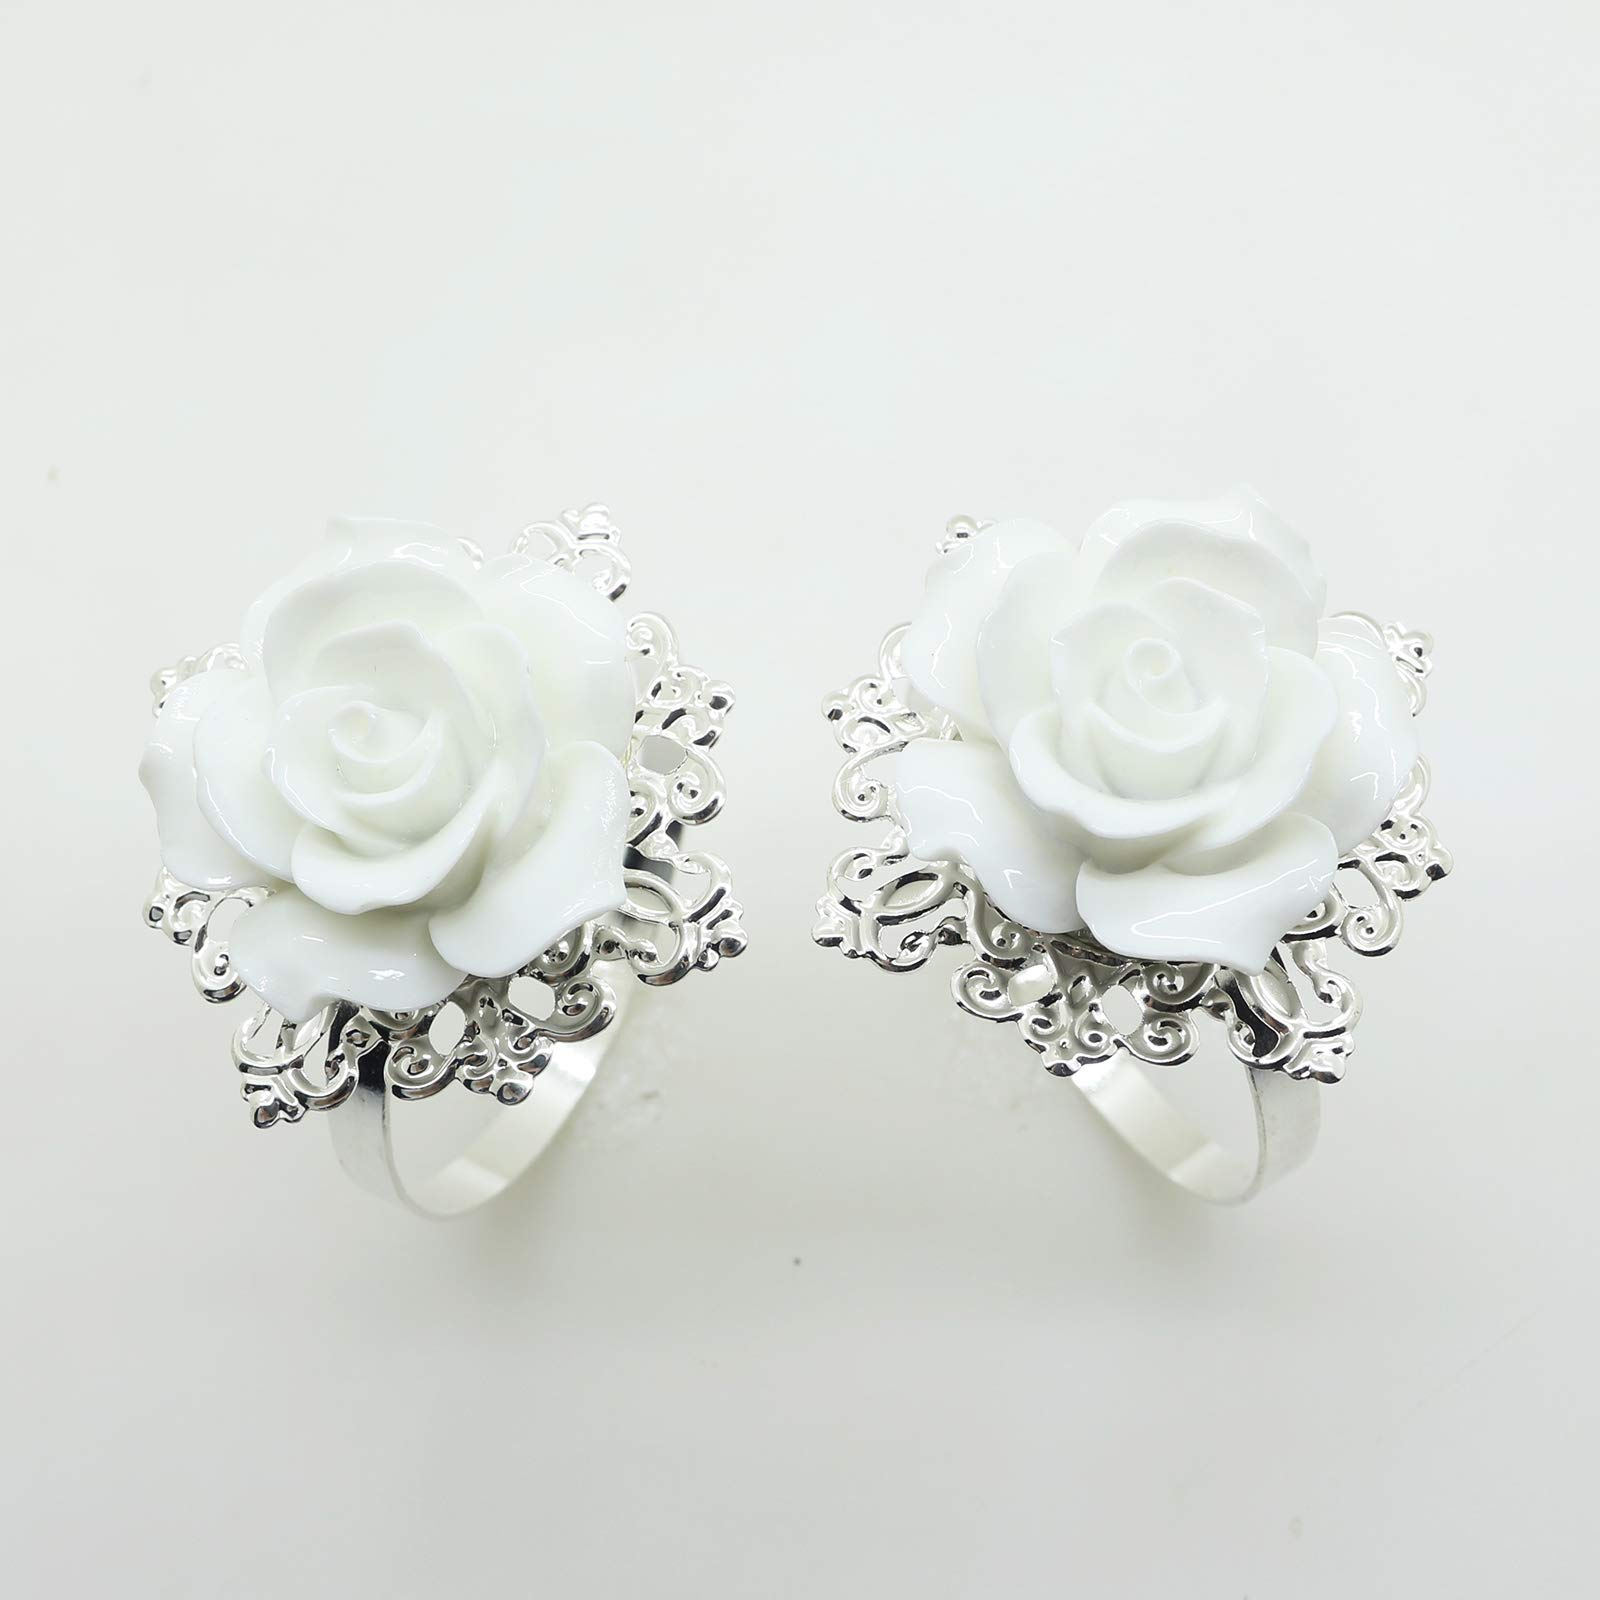 AngHui ShiPin 10pcs White Rose Napkin Ring Serviette Holder for Wedding Party Dinner Table Decor for Christmas Table